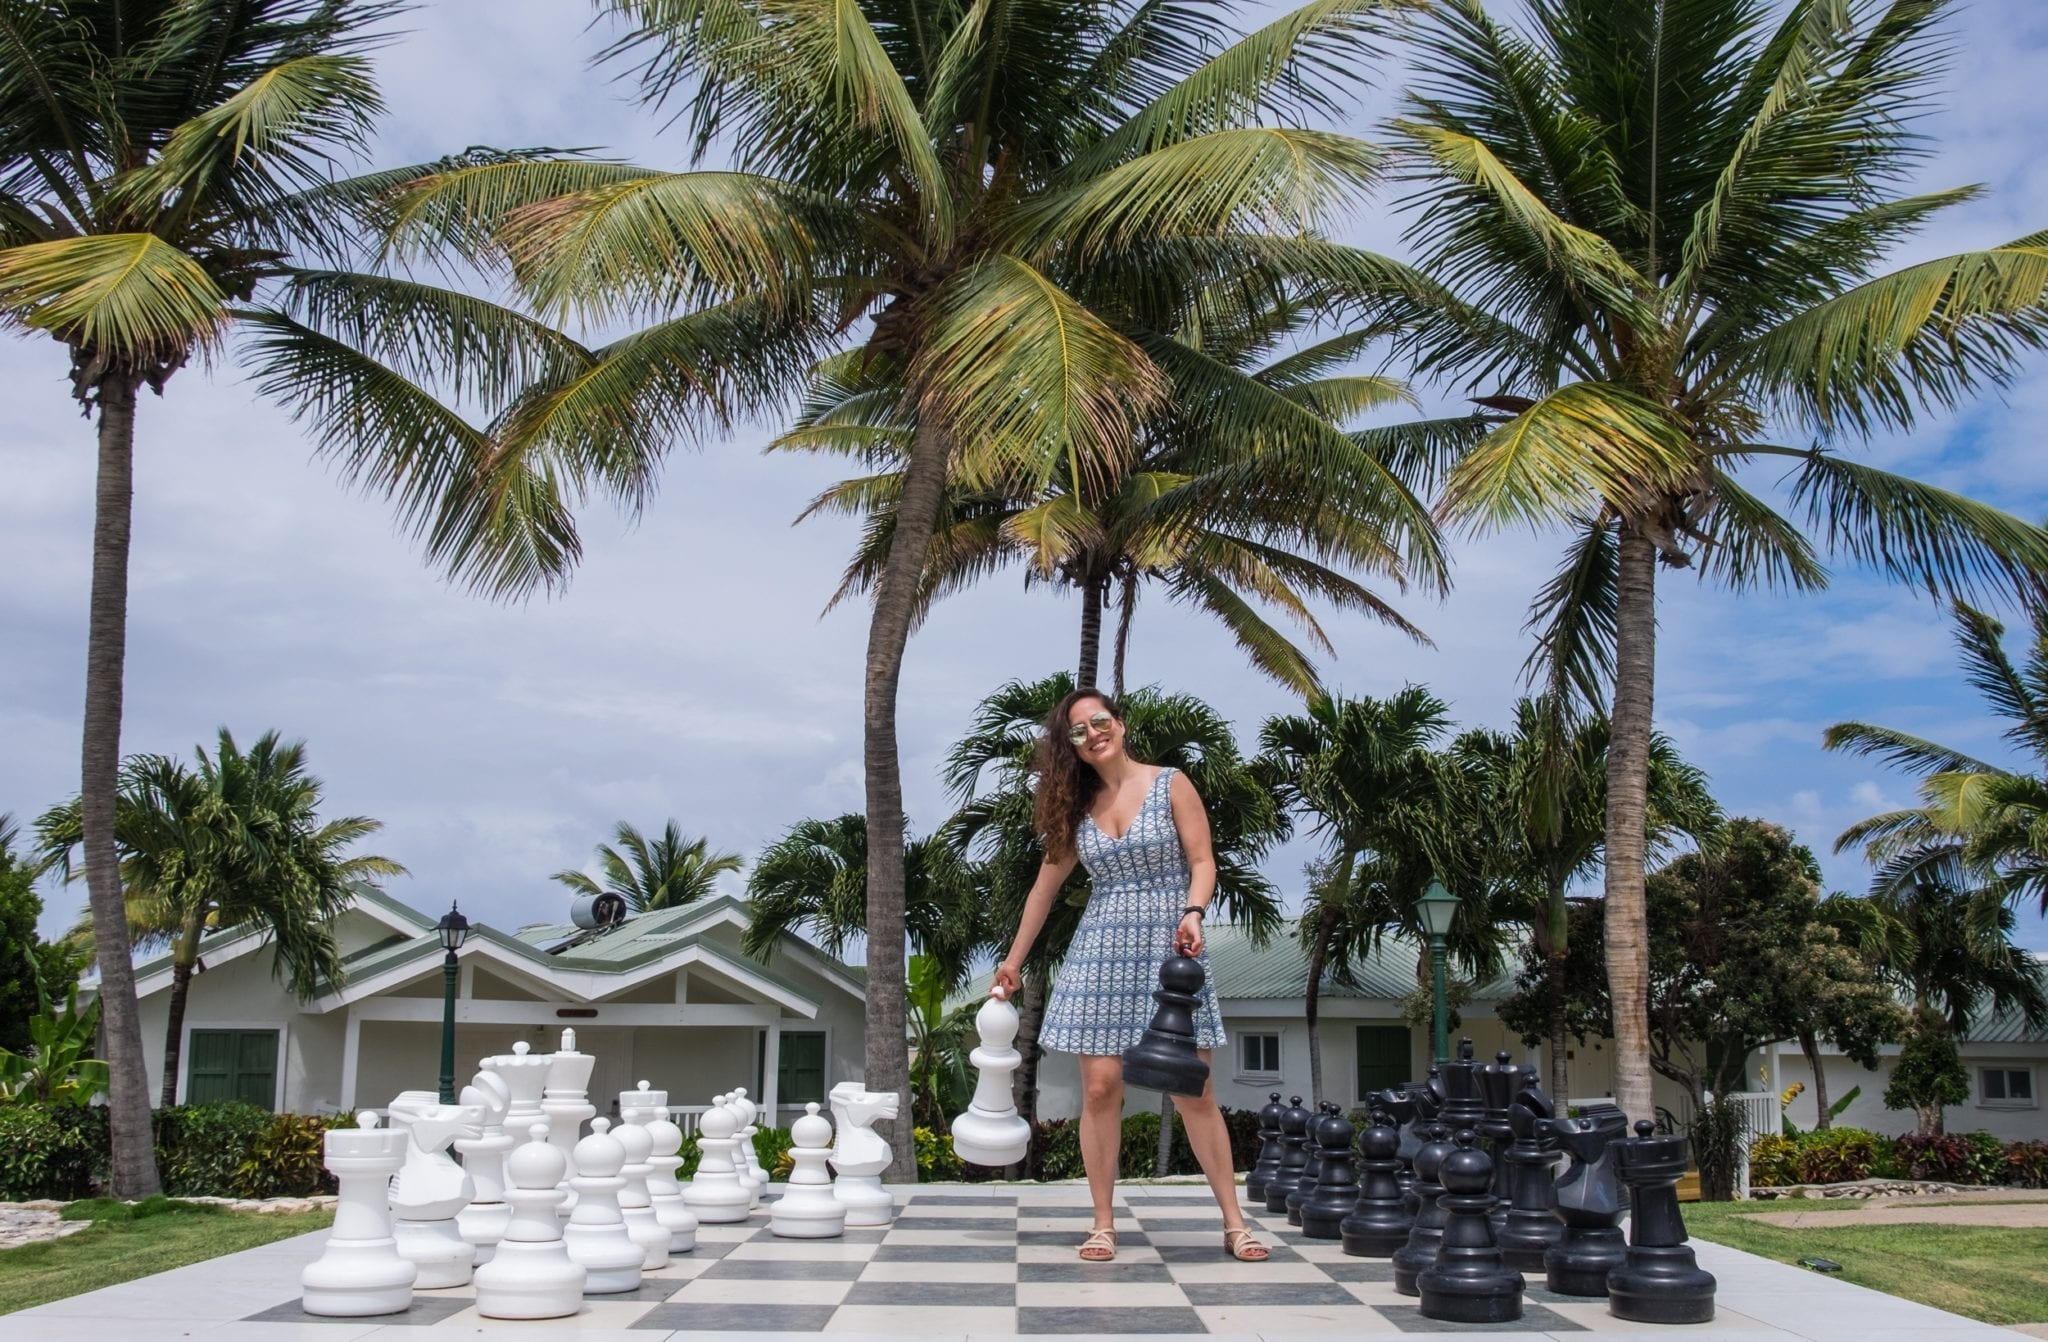 Kate plays on a giant chess board in Antigua, holding a white bishop in one hand and a black pawn in another. She is wearing a short green and white patterned dress. Above her are palm trees and a blue and white streaky sky.